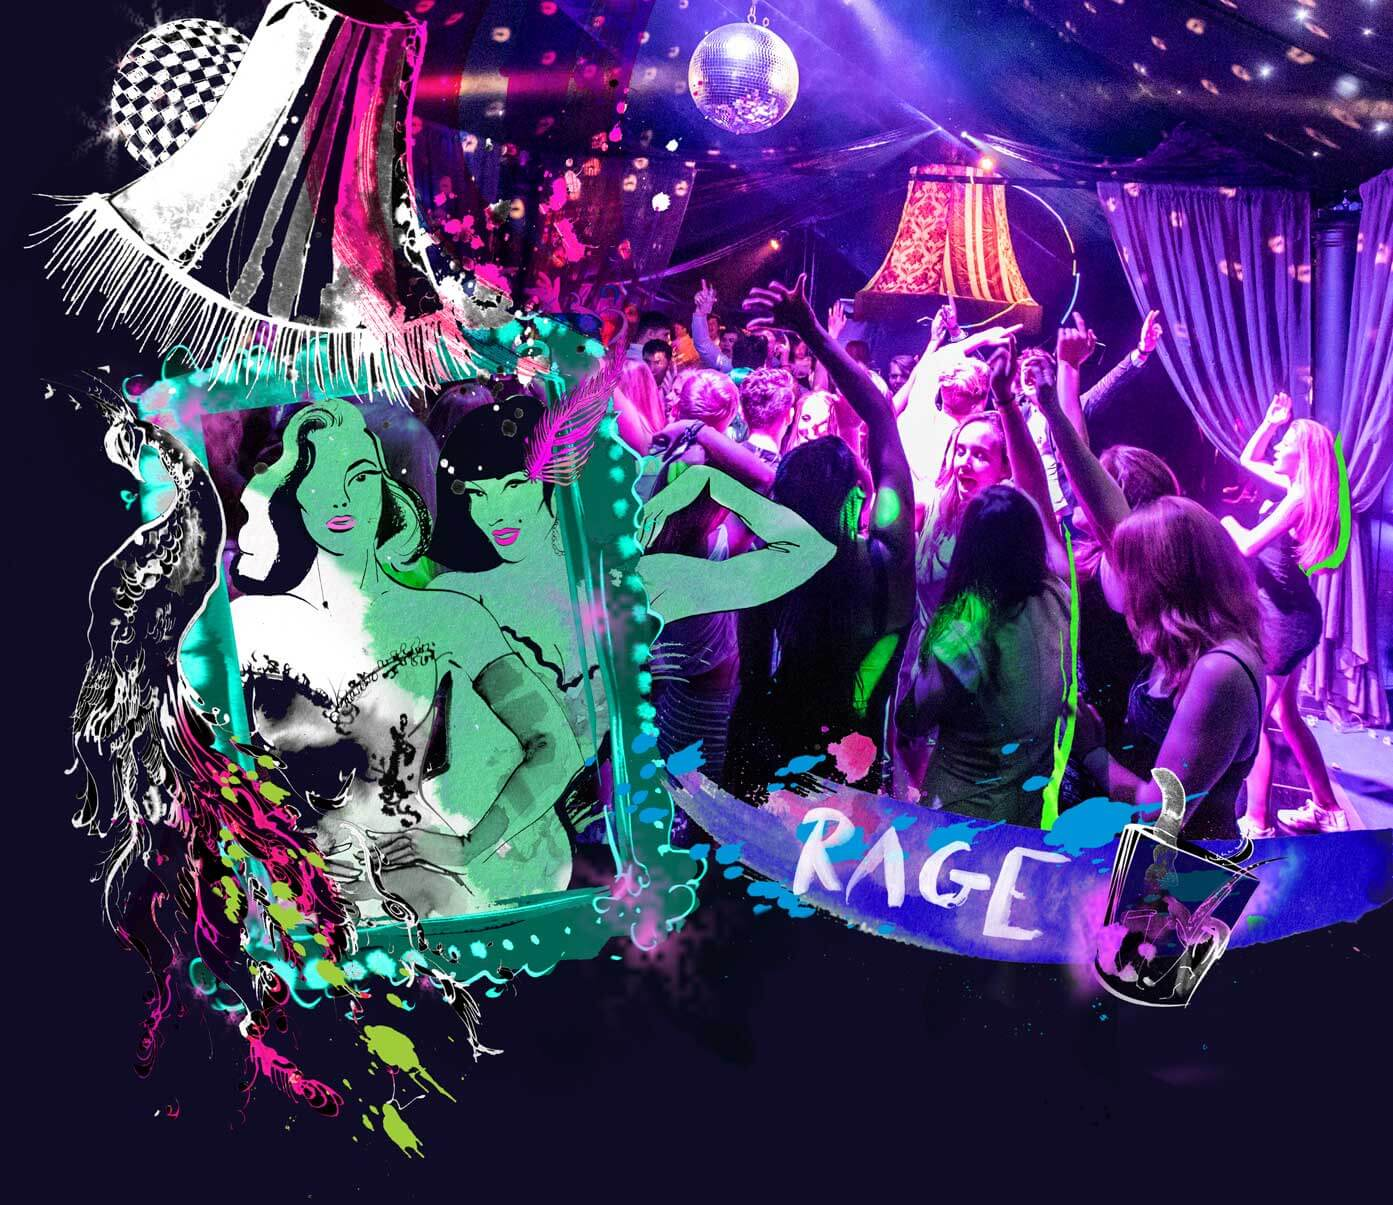 The Rage Pop Up Nightclub illustration